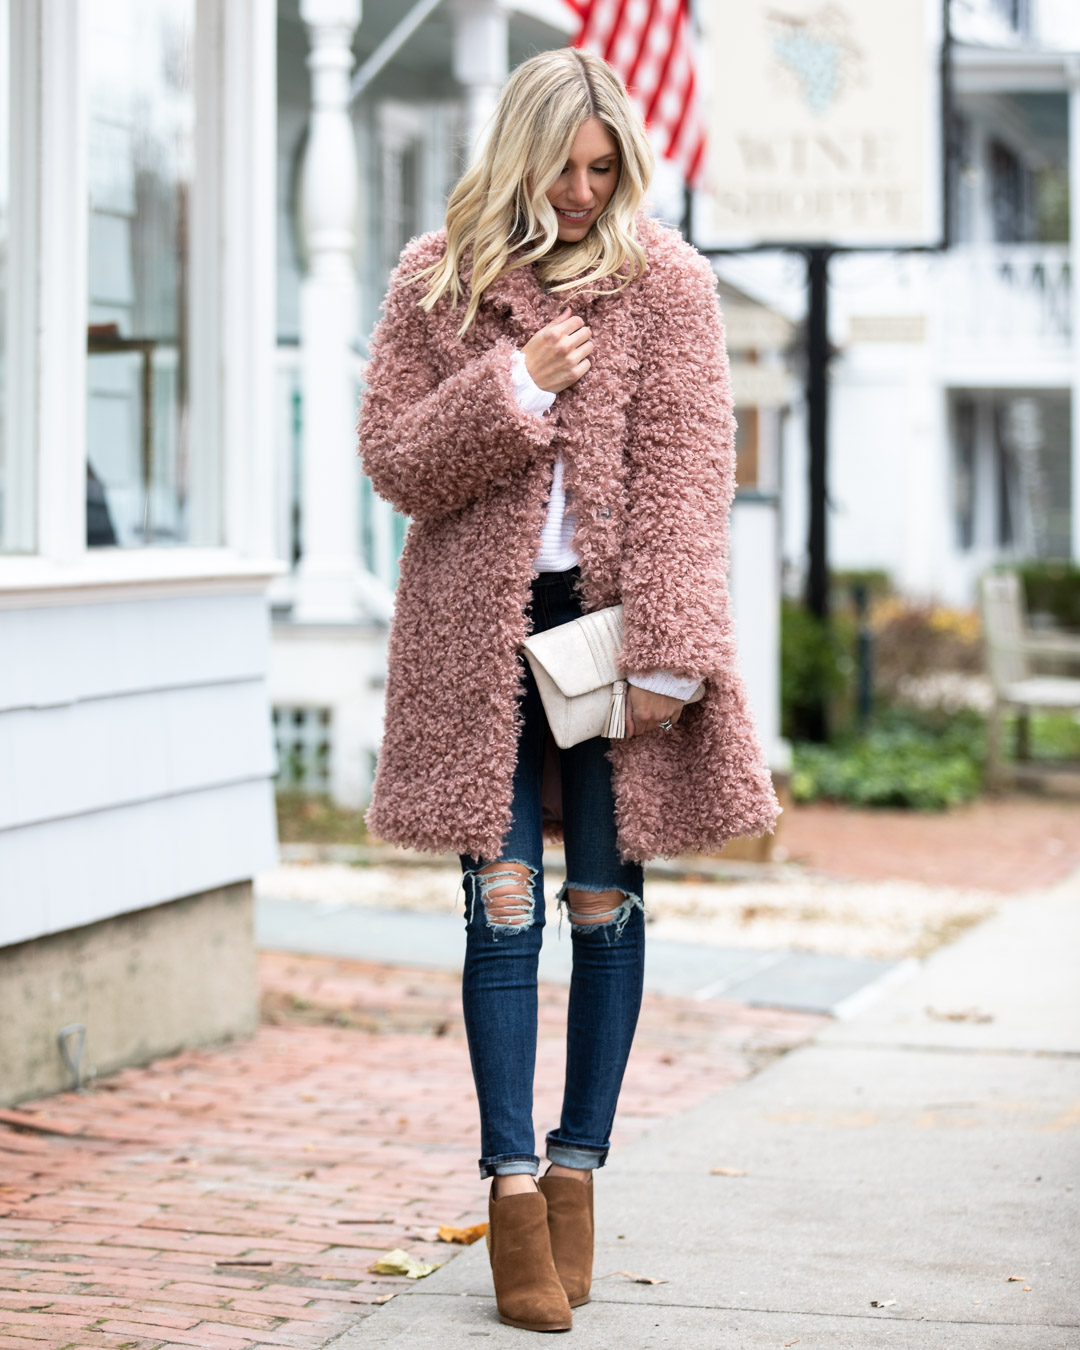 Chicwish Blush Jacket & White Sweater